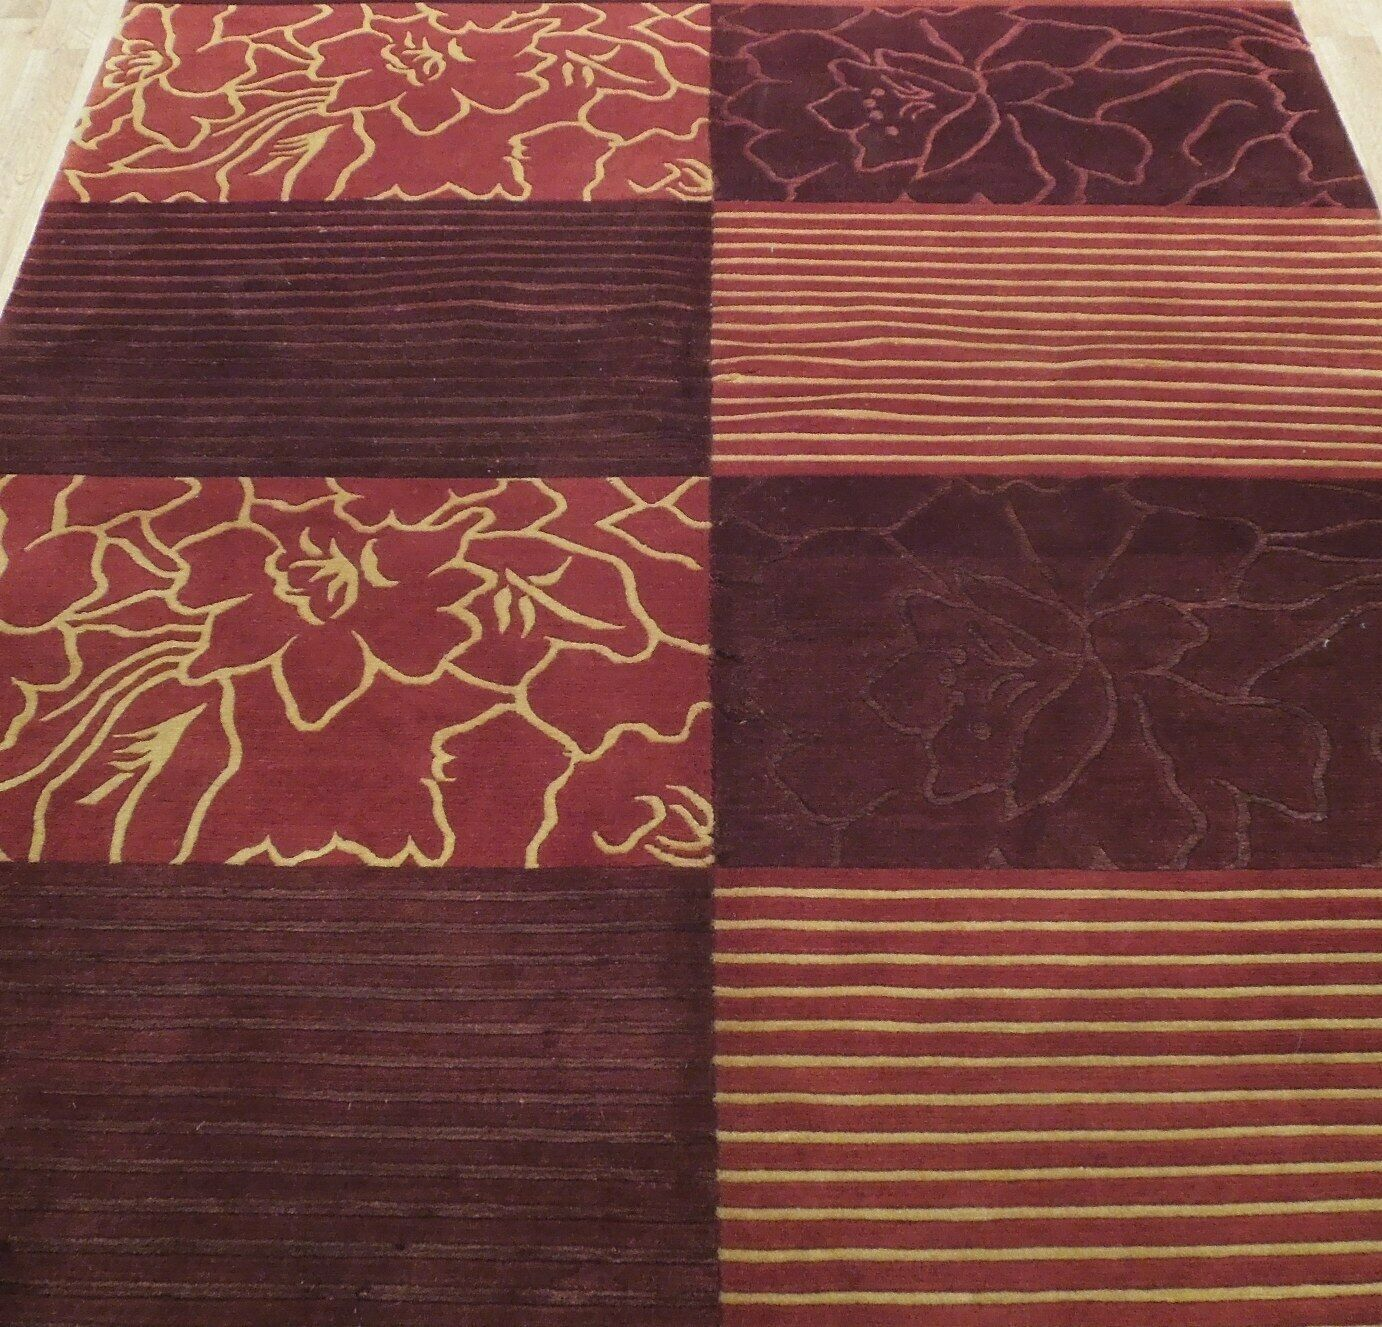 Abstract Shades of Red Gold stripes Handmade 6 x 8 Red Modern Wool & Silk Rug image 9